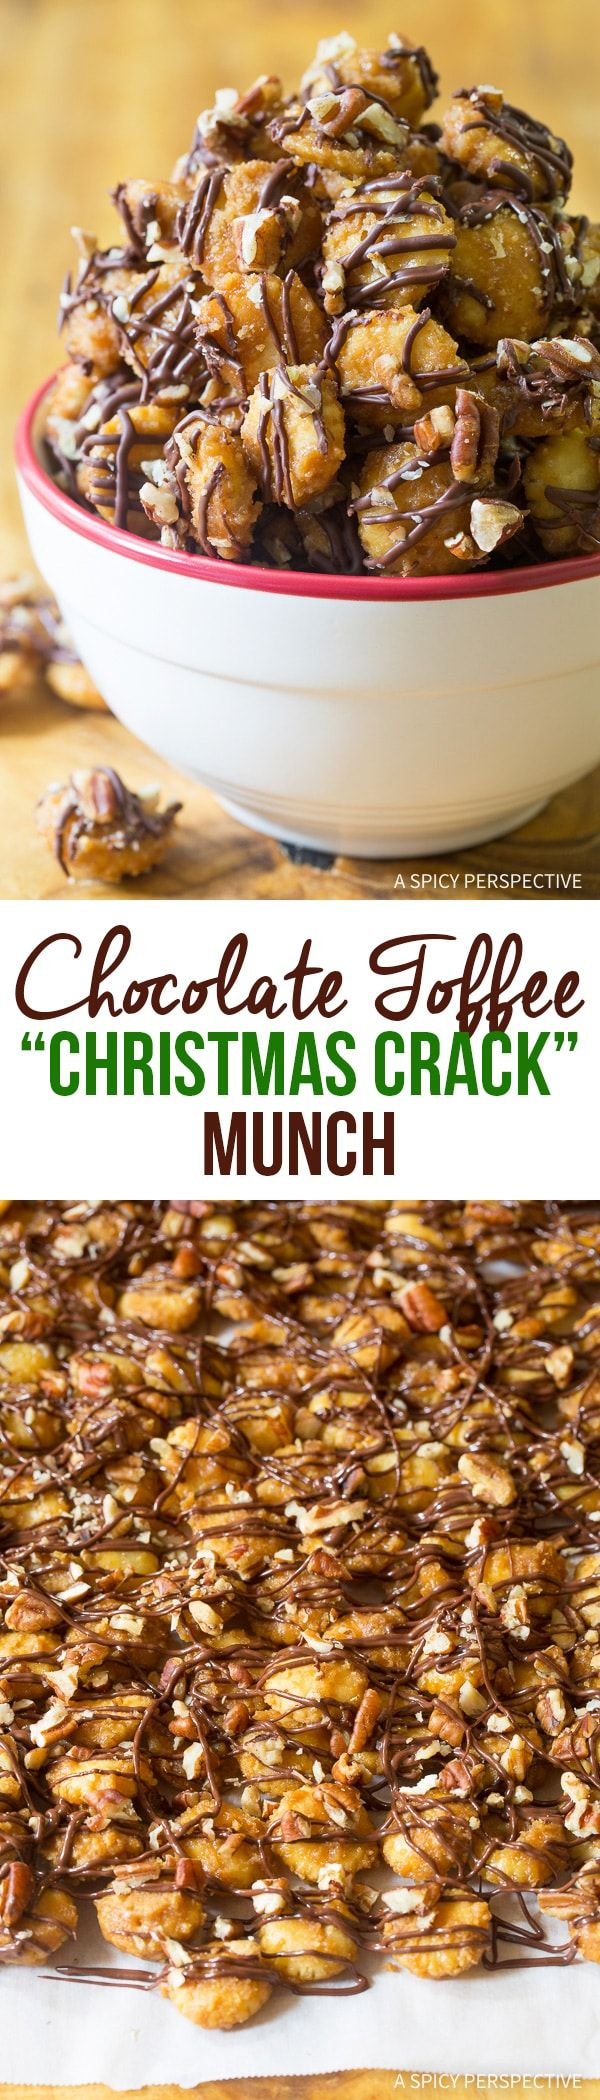 "Chocolate Toffee Christmas Crack Munch Recipe - A fabulous holiday edible gift! Have you tried ""christmas crack"" saltine cracker toffee? If so, you are going to go crazy over this snack mix version! via @spicyperspectiv"